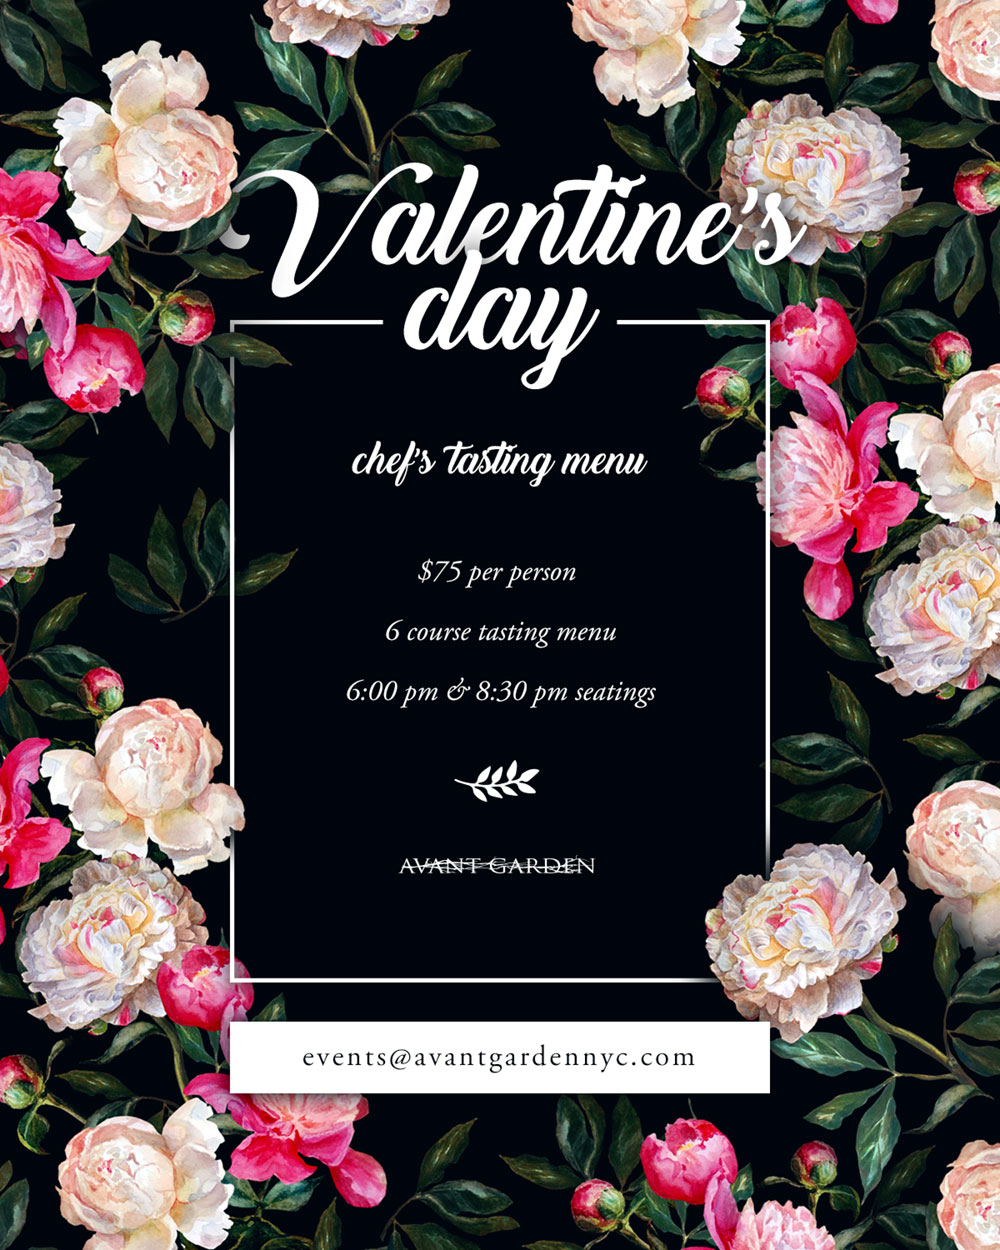 Vday Flier Design For Avant Garden NYC